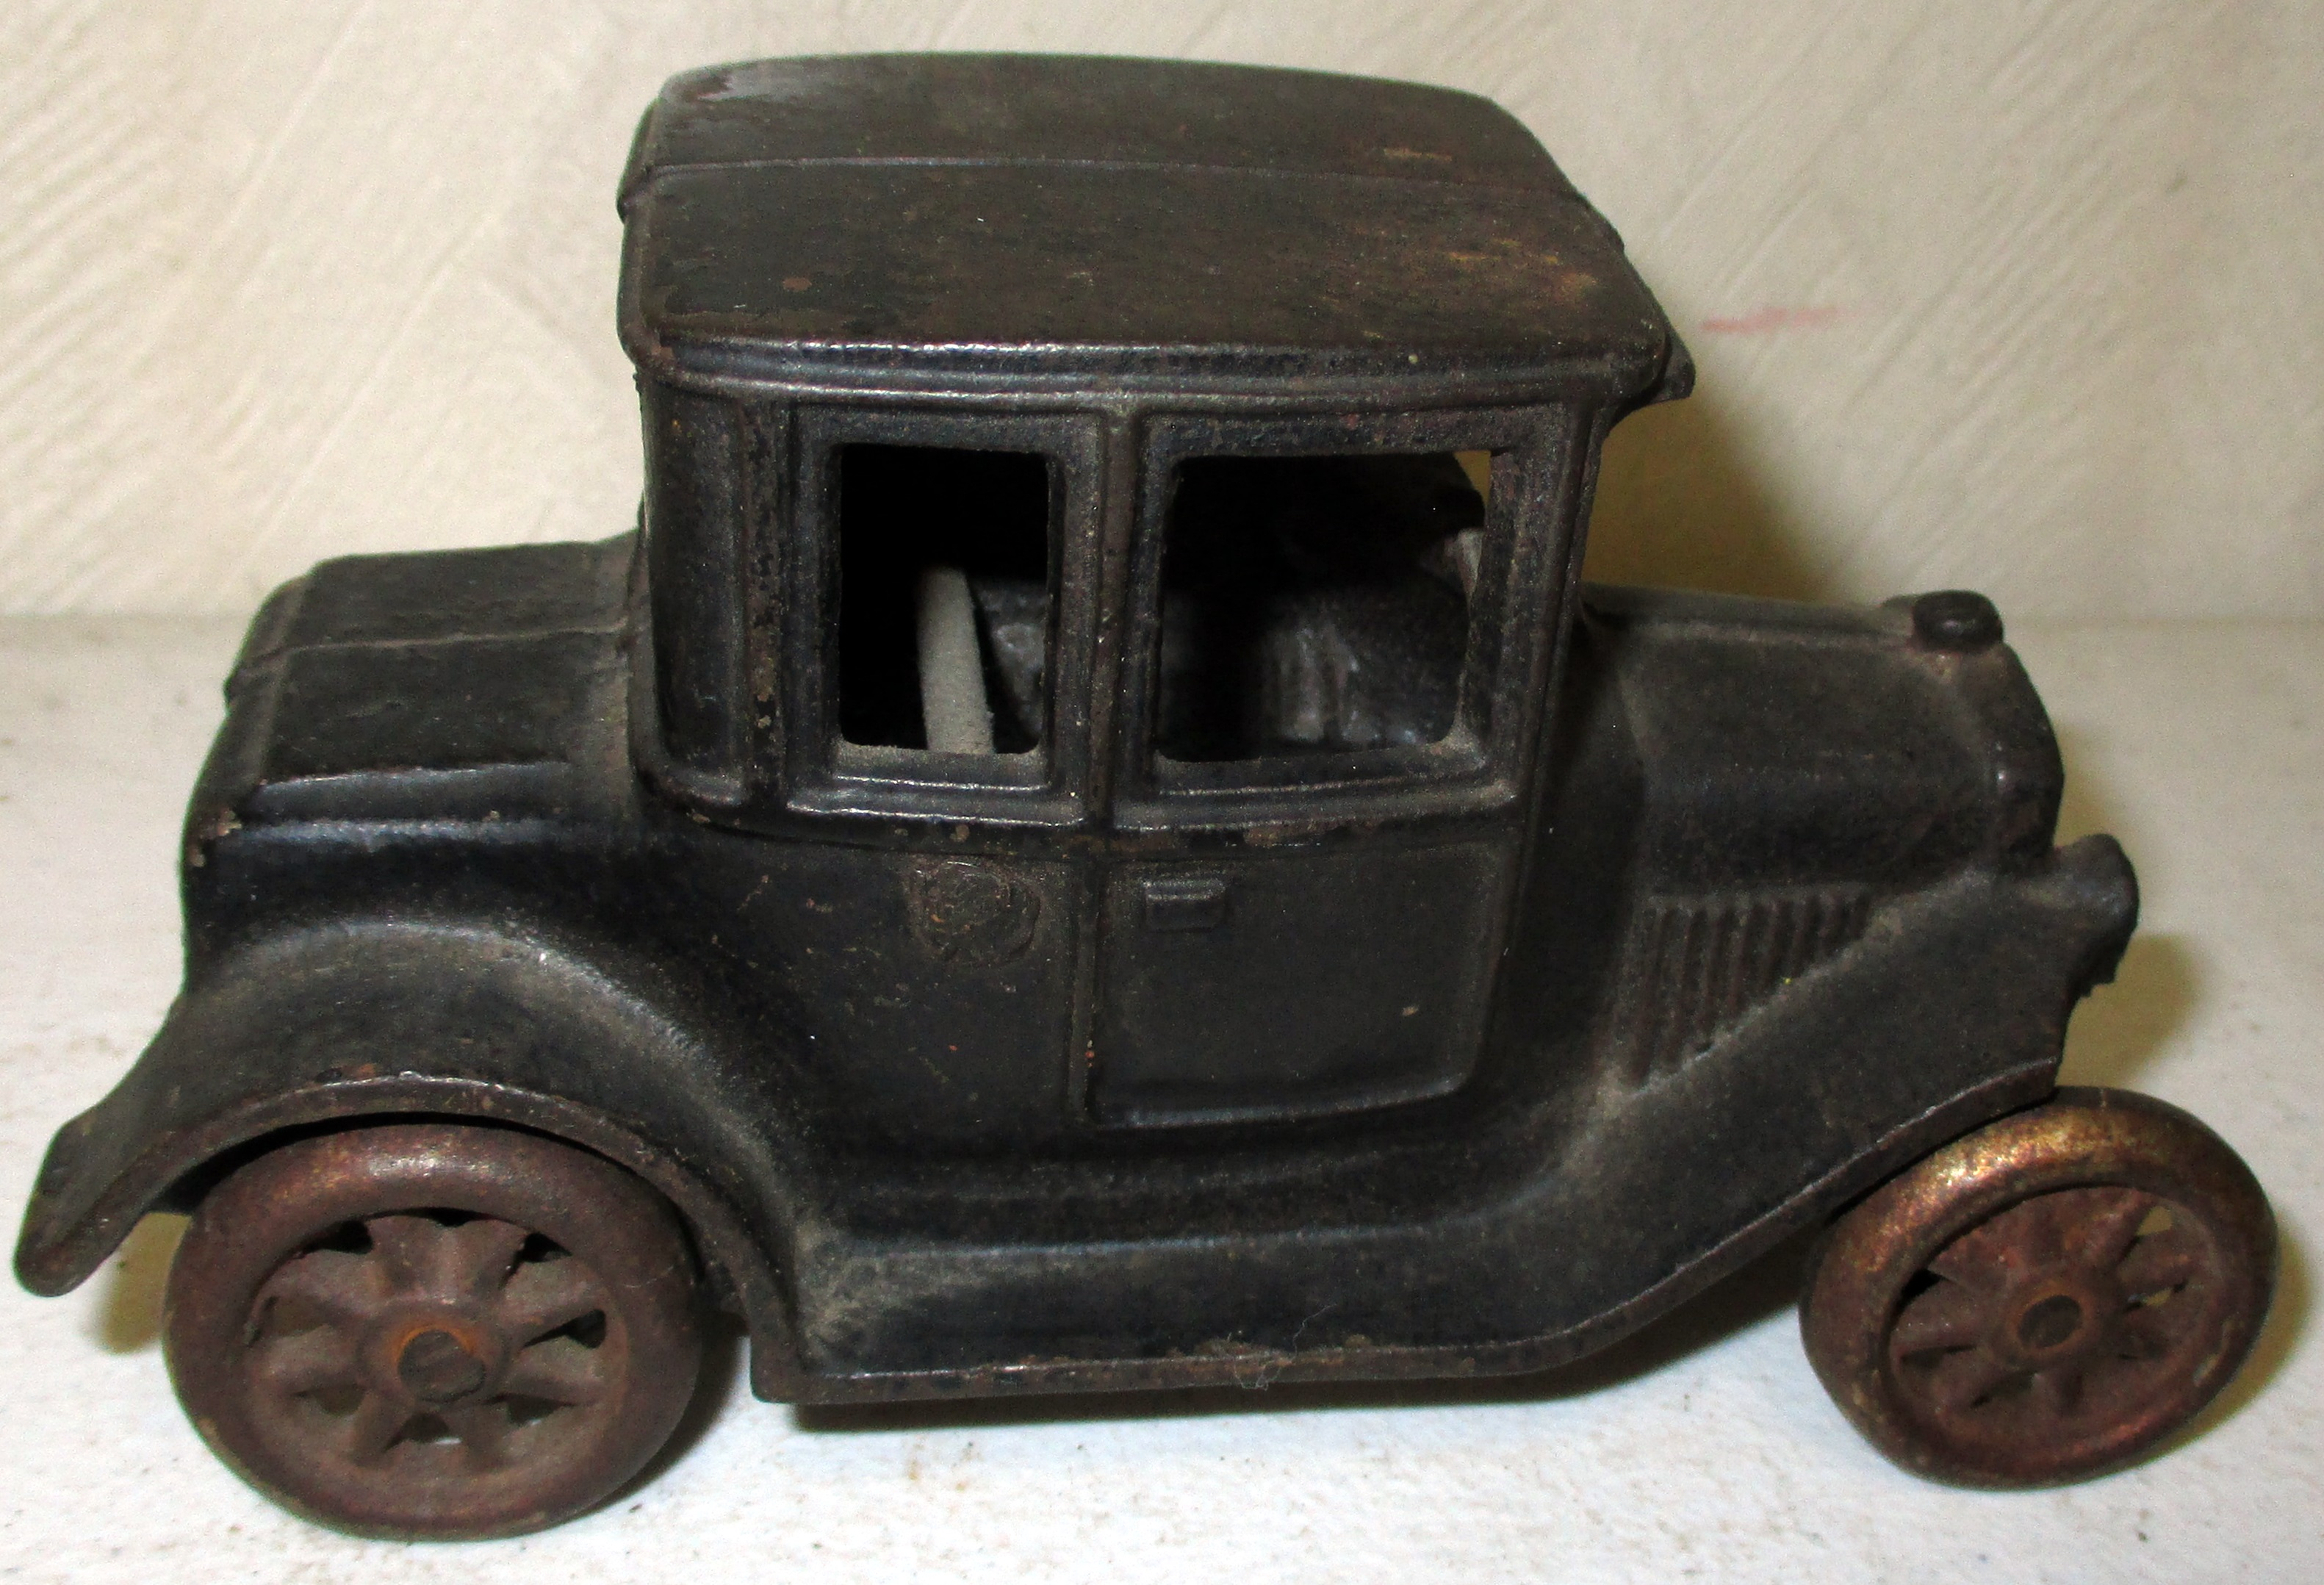 New Year's Day Auction – Advertising, Collectibles, Toys, Coins And More! – Starting At 9:00AM